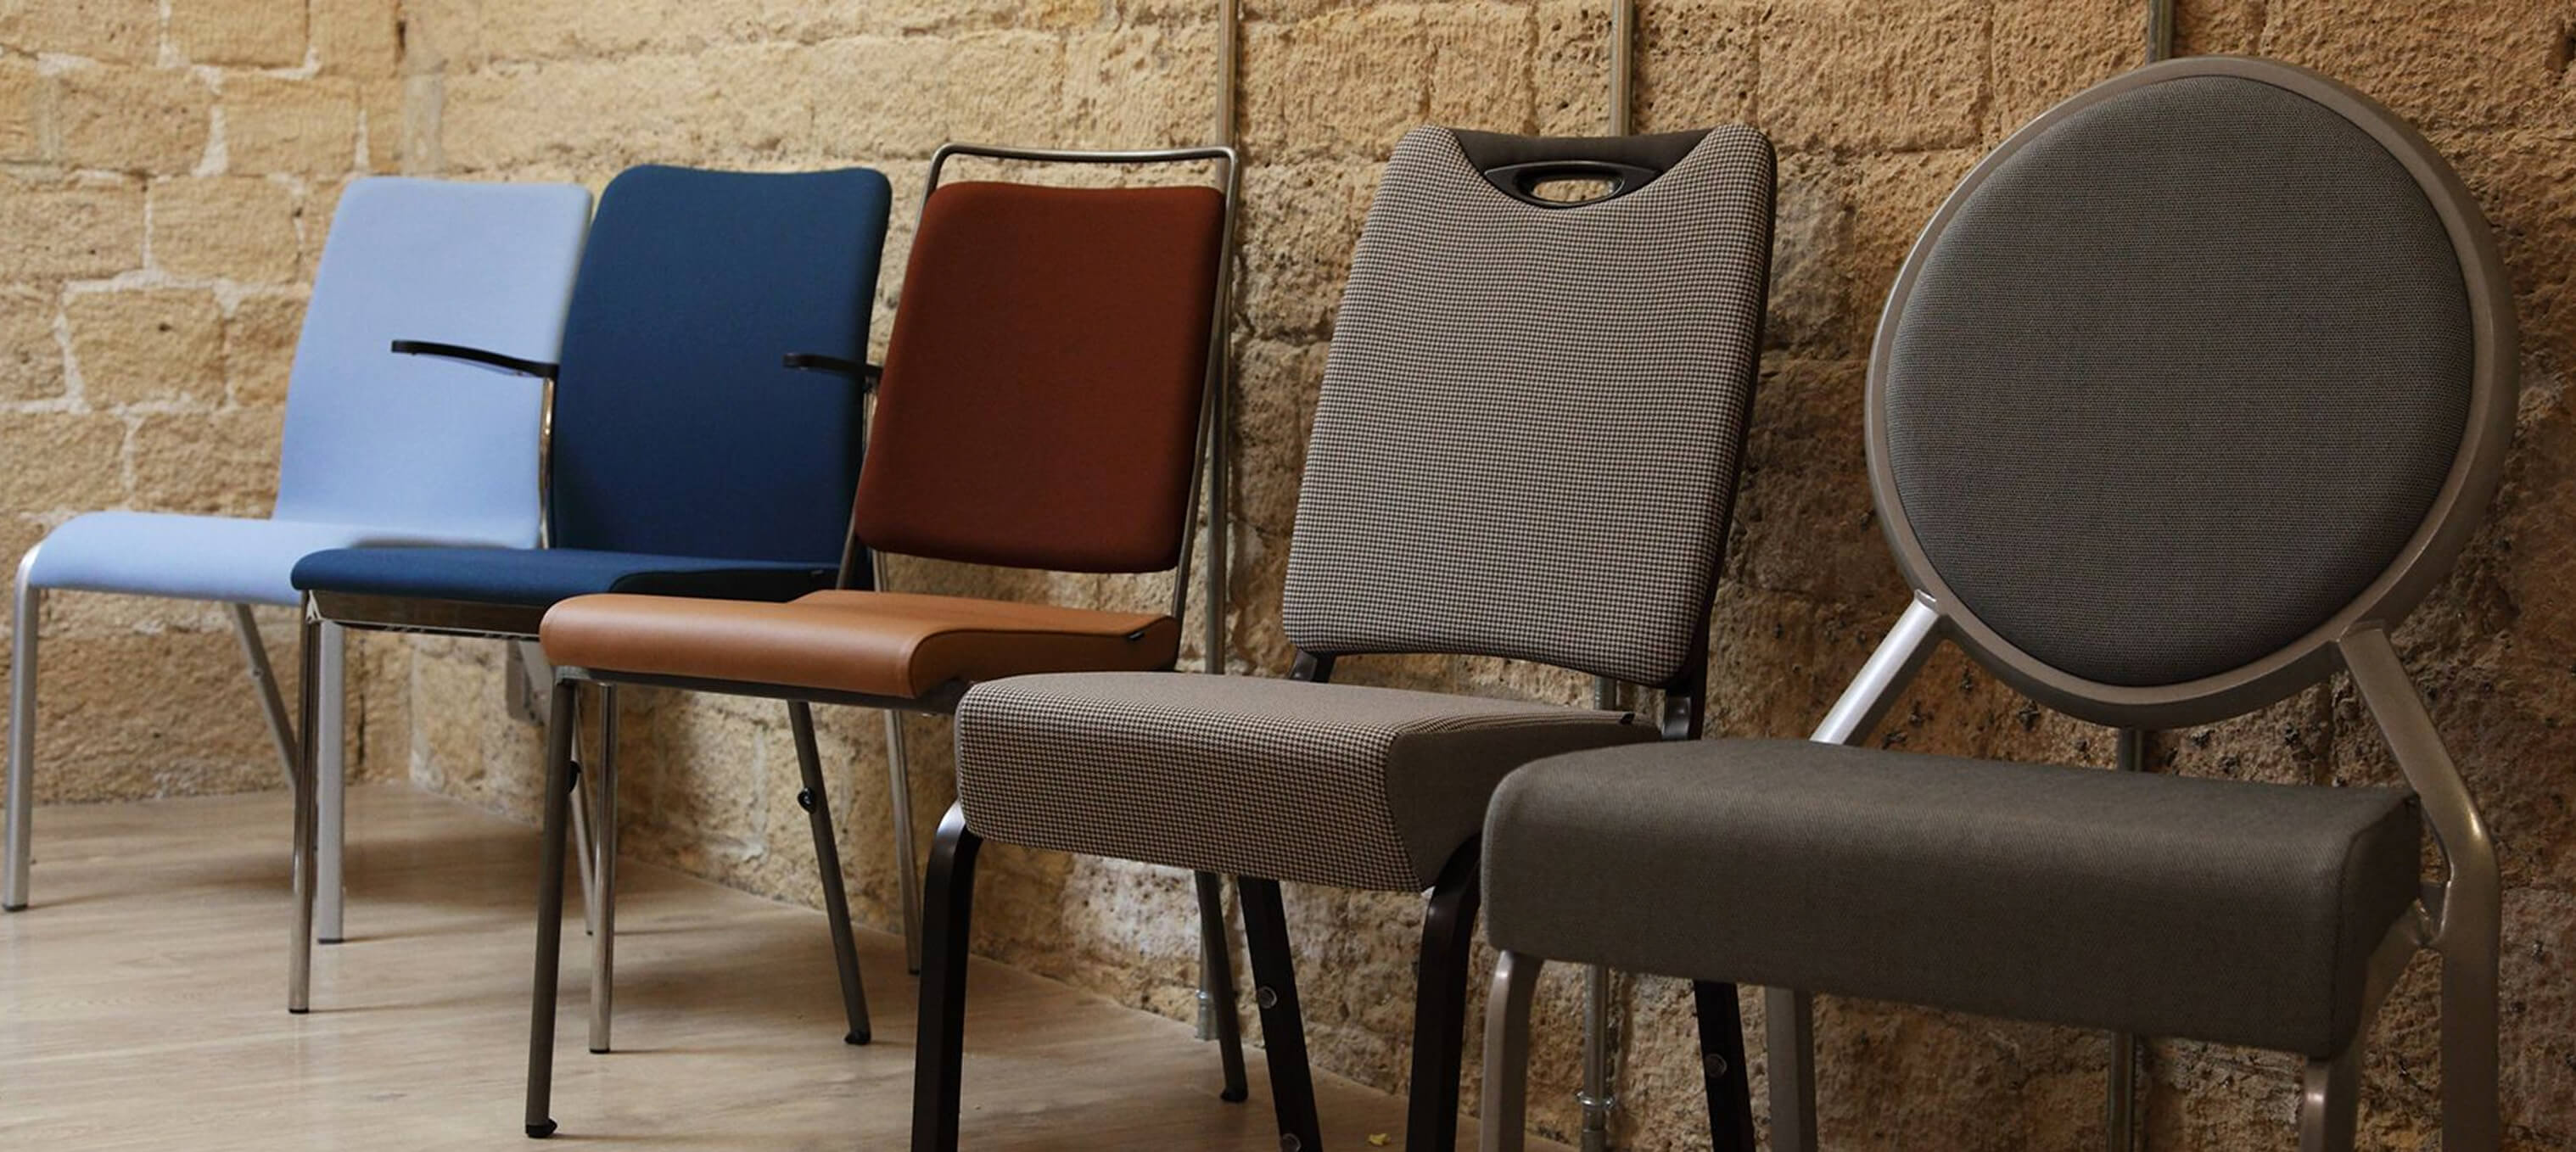 Burgess Chair Ranges Full Screen